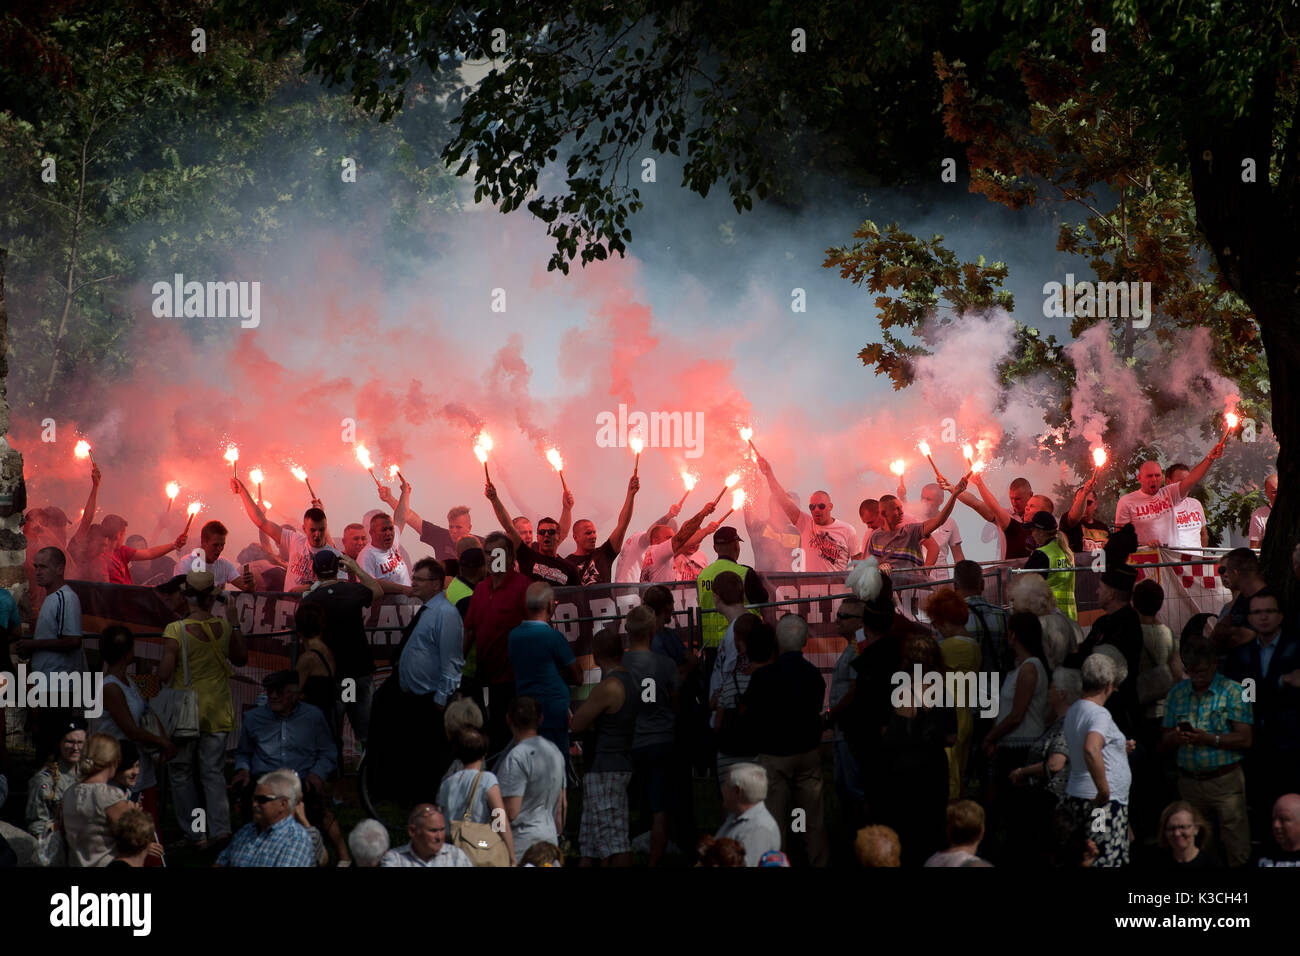 LUBIN, POLAND - AUGUST 31, 2017: Celebrations of the 35th anniversary of the Lubin Crime and the 37th anniversary - Stock Image